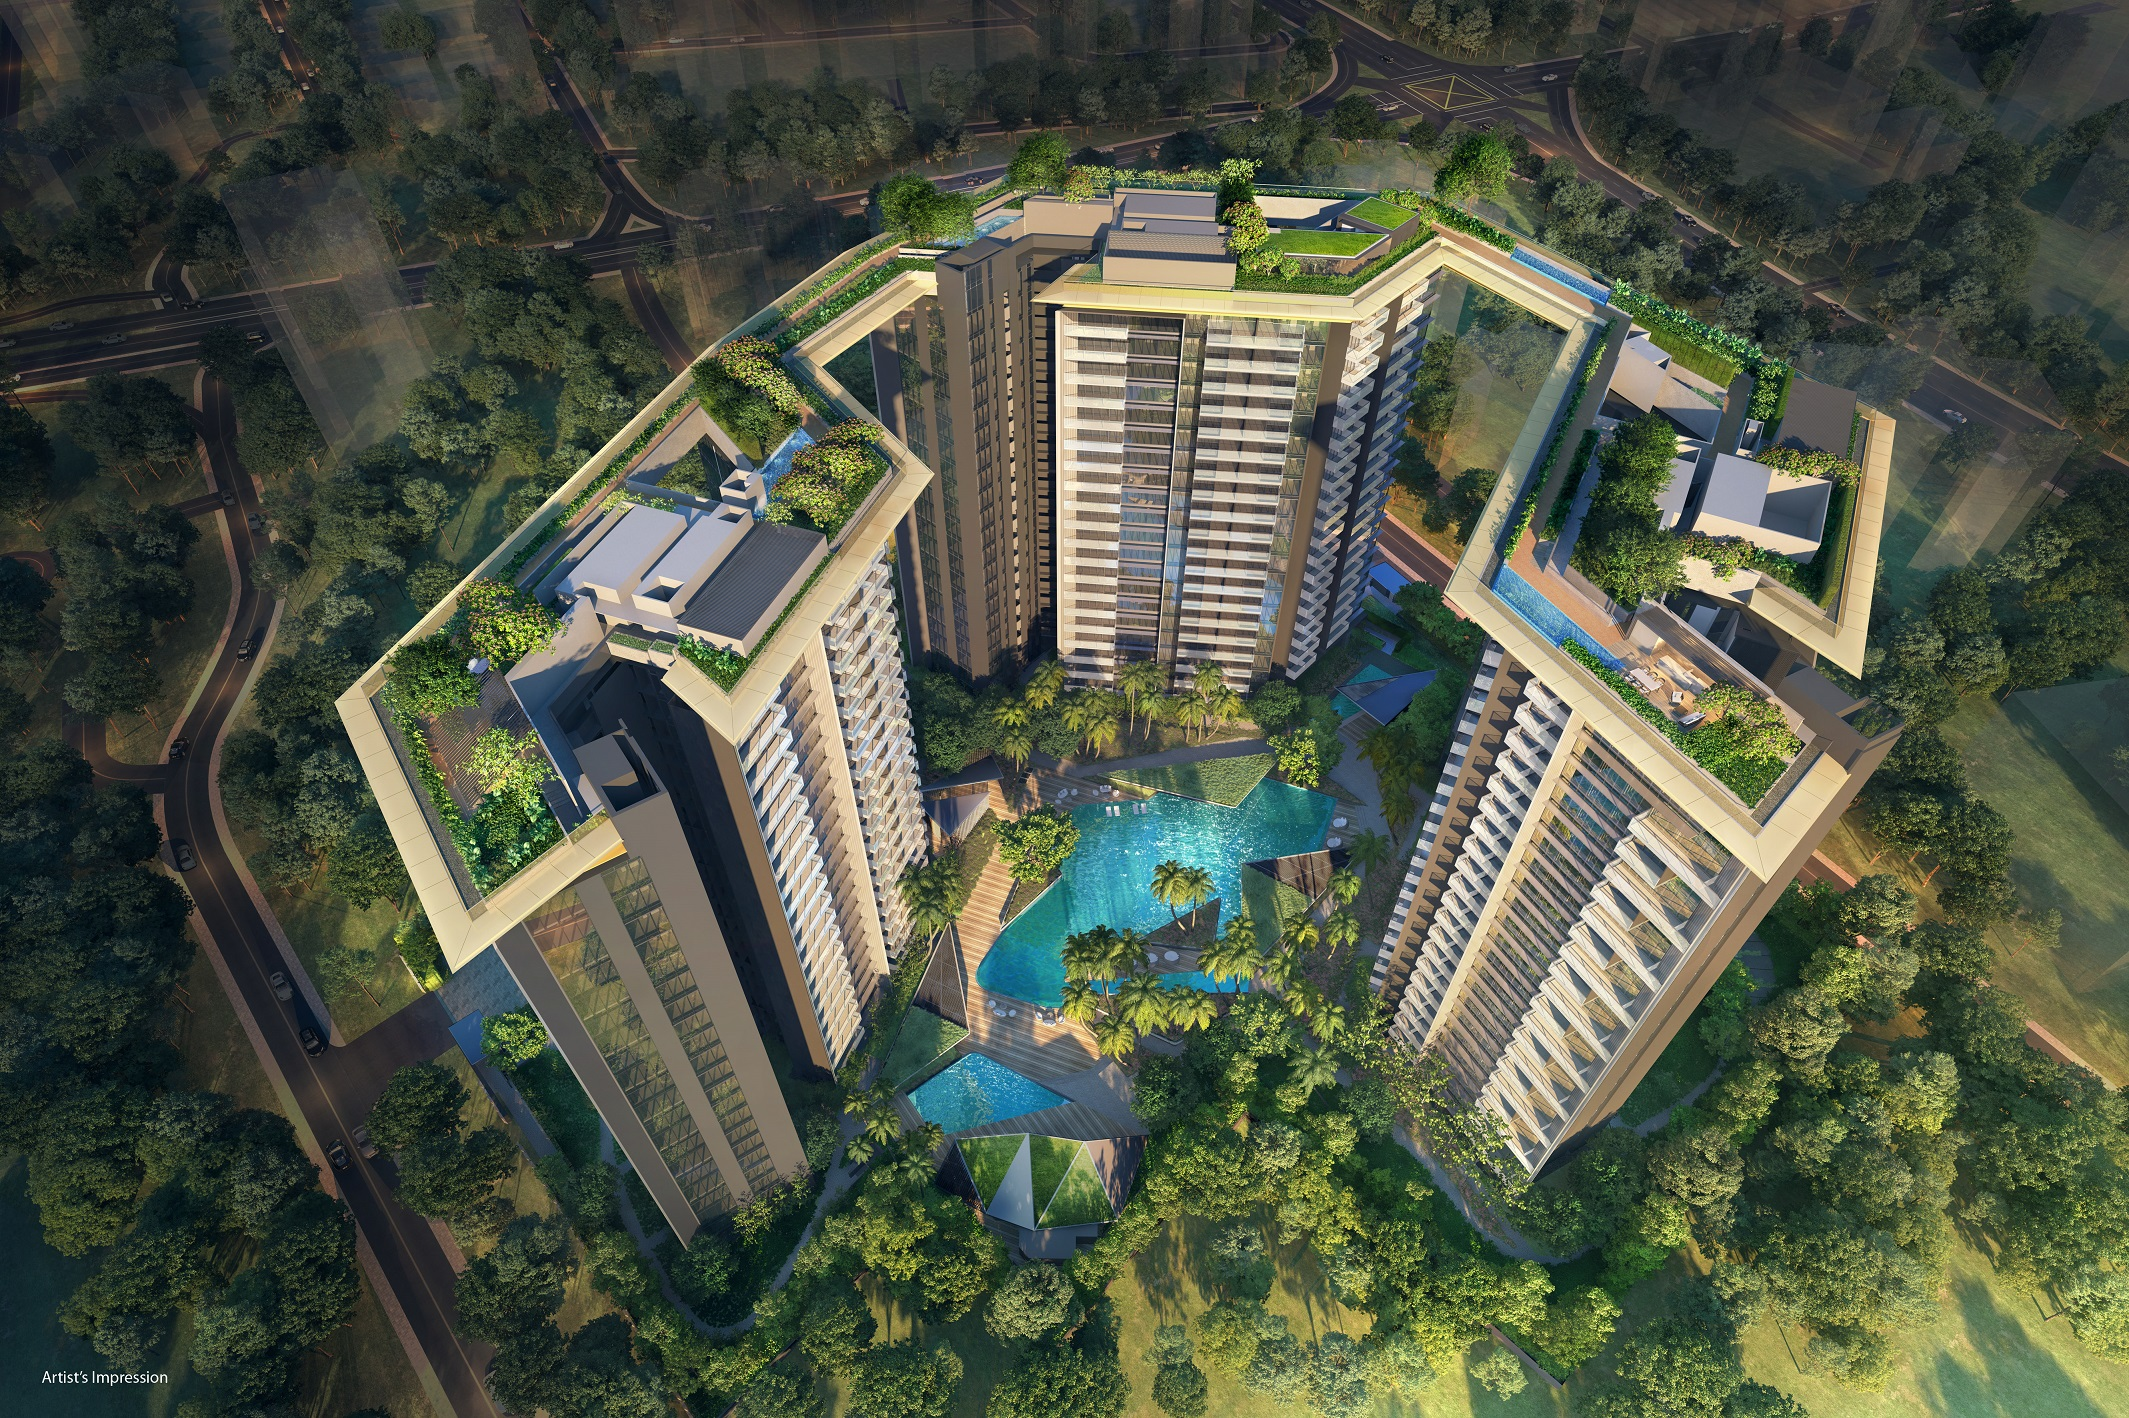 CDL's 592-unit Amber Park could stand to benefit from the QC exemption (Photo: City Developments) - EDGEPROP SINGAPORE